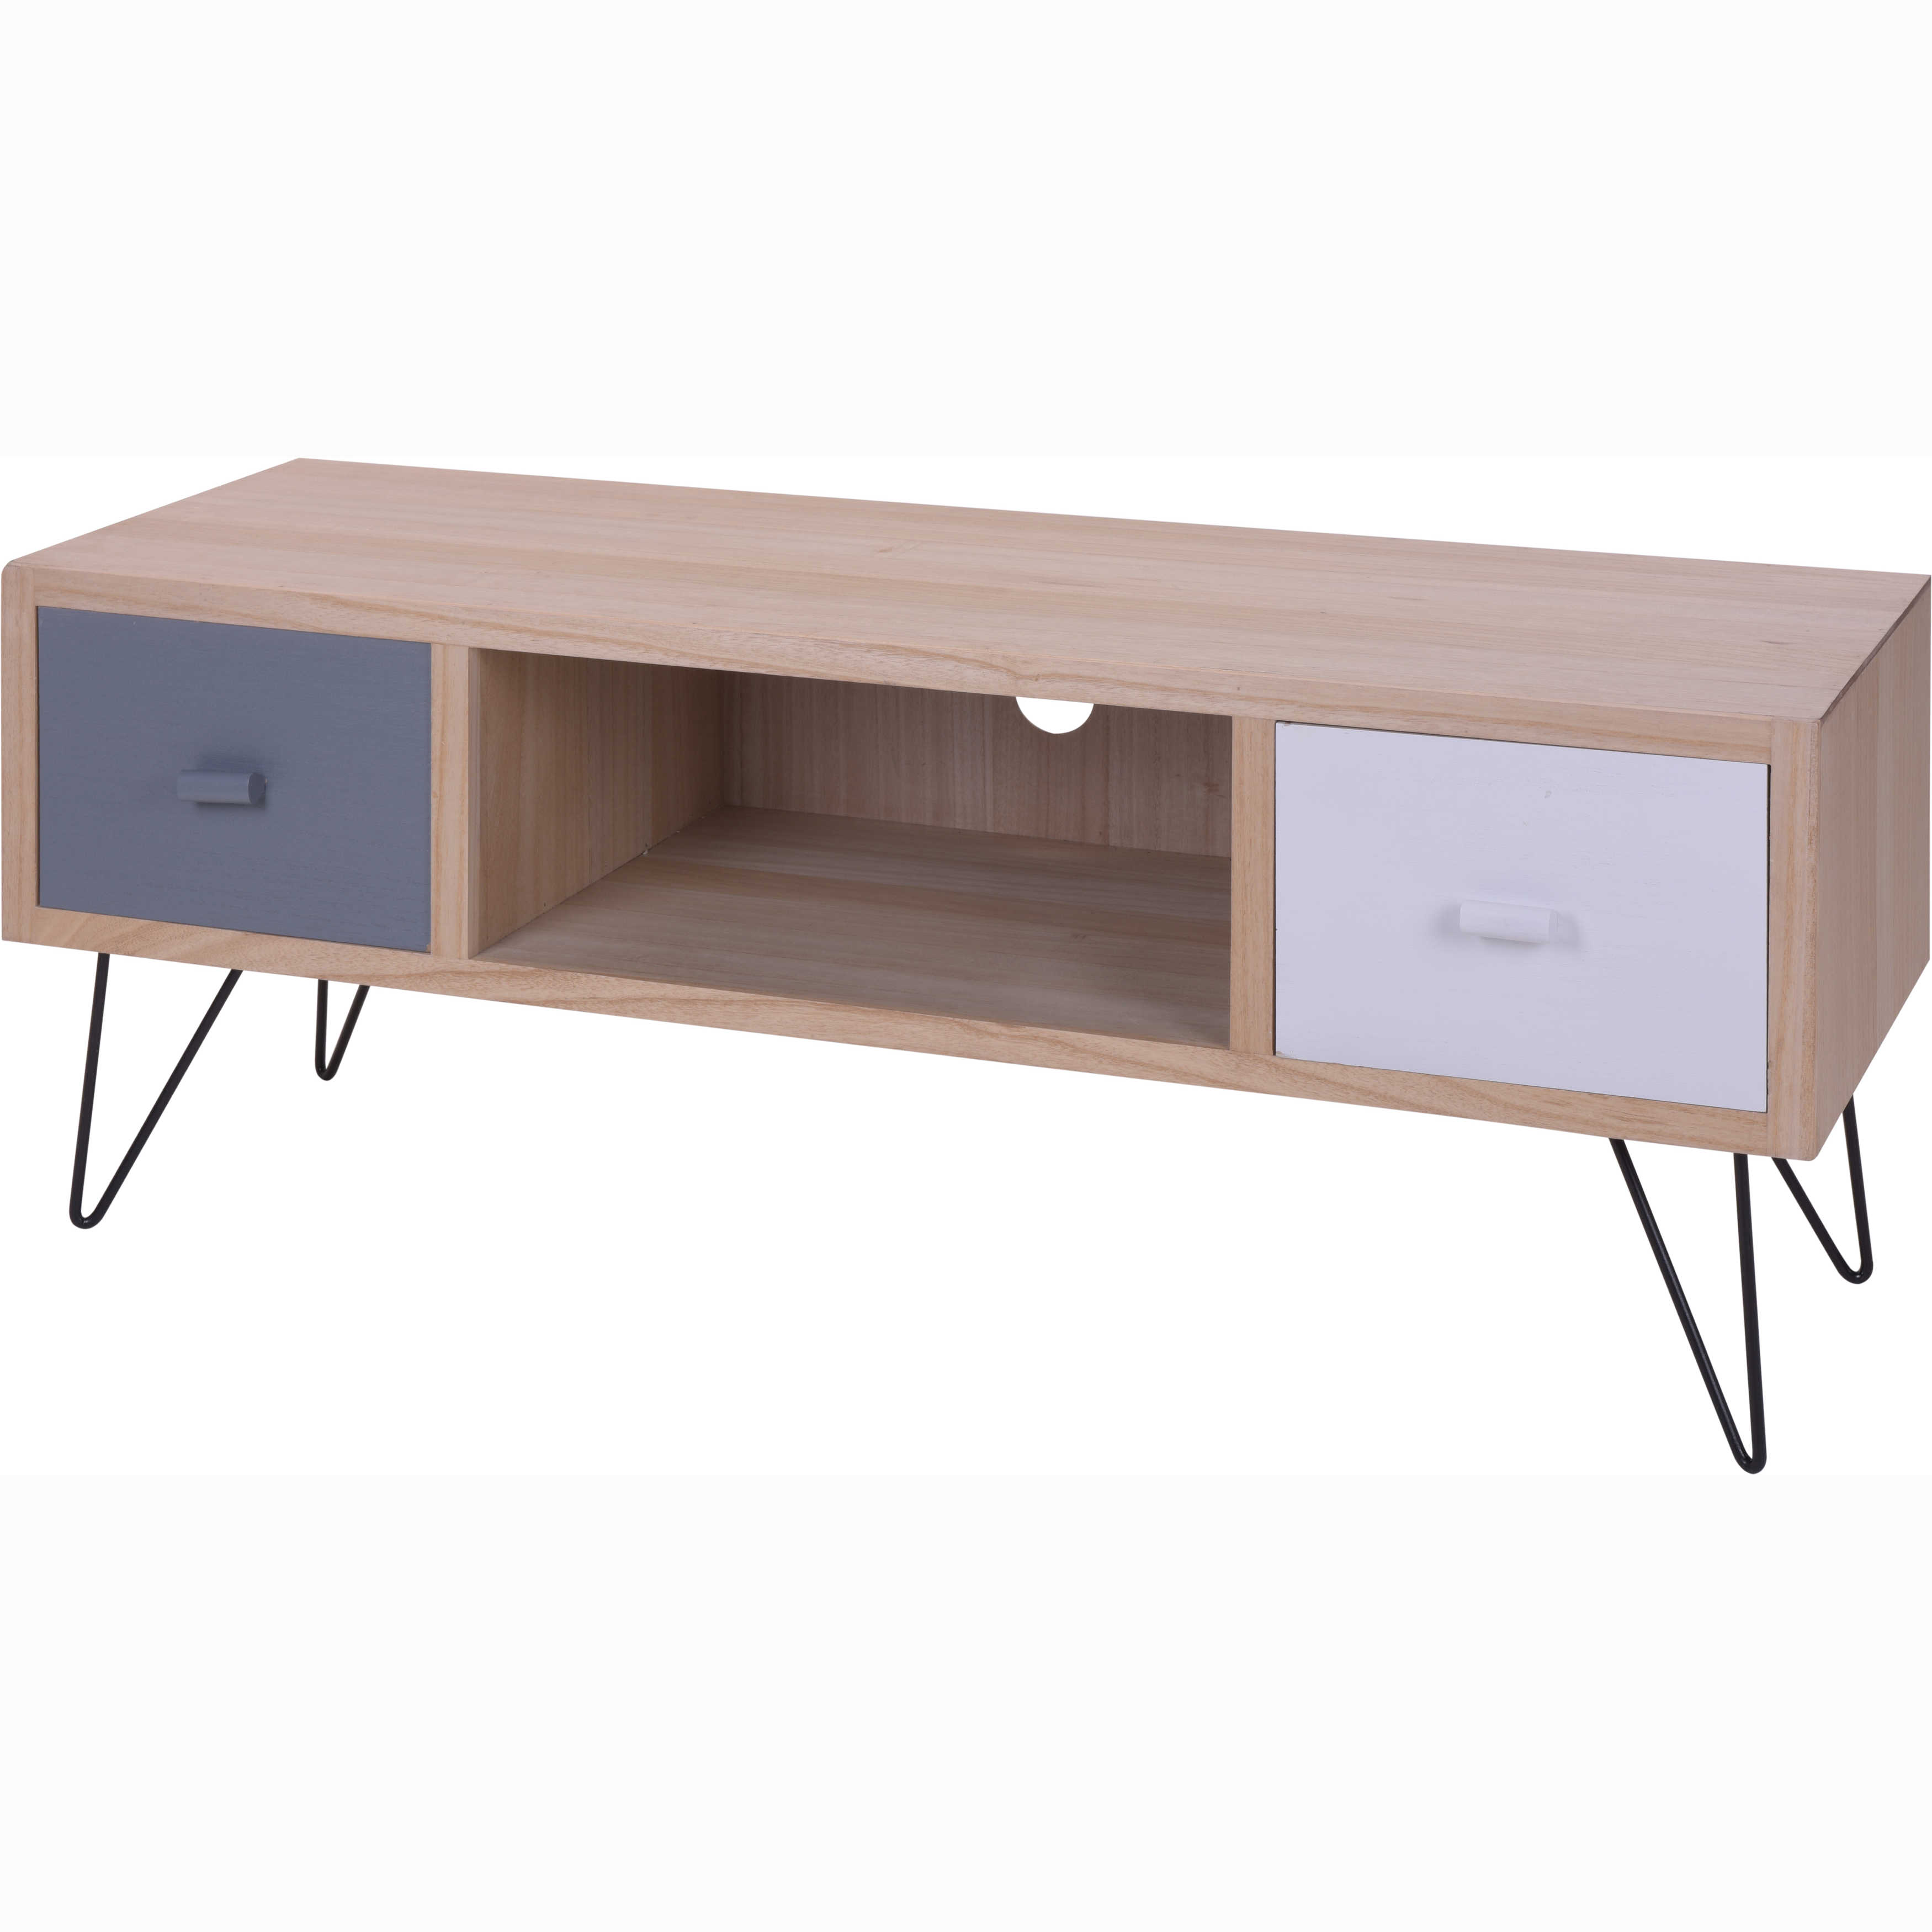 Mueble tv gris blanco casika for Mueble blanco pared